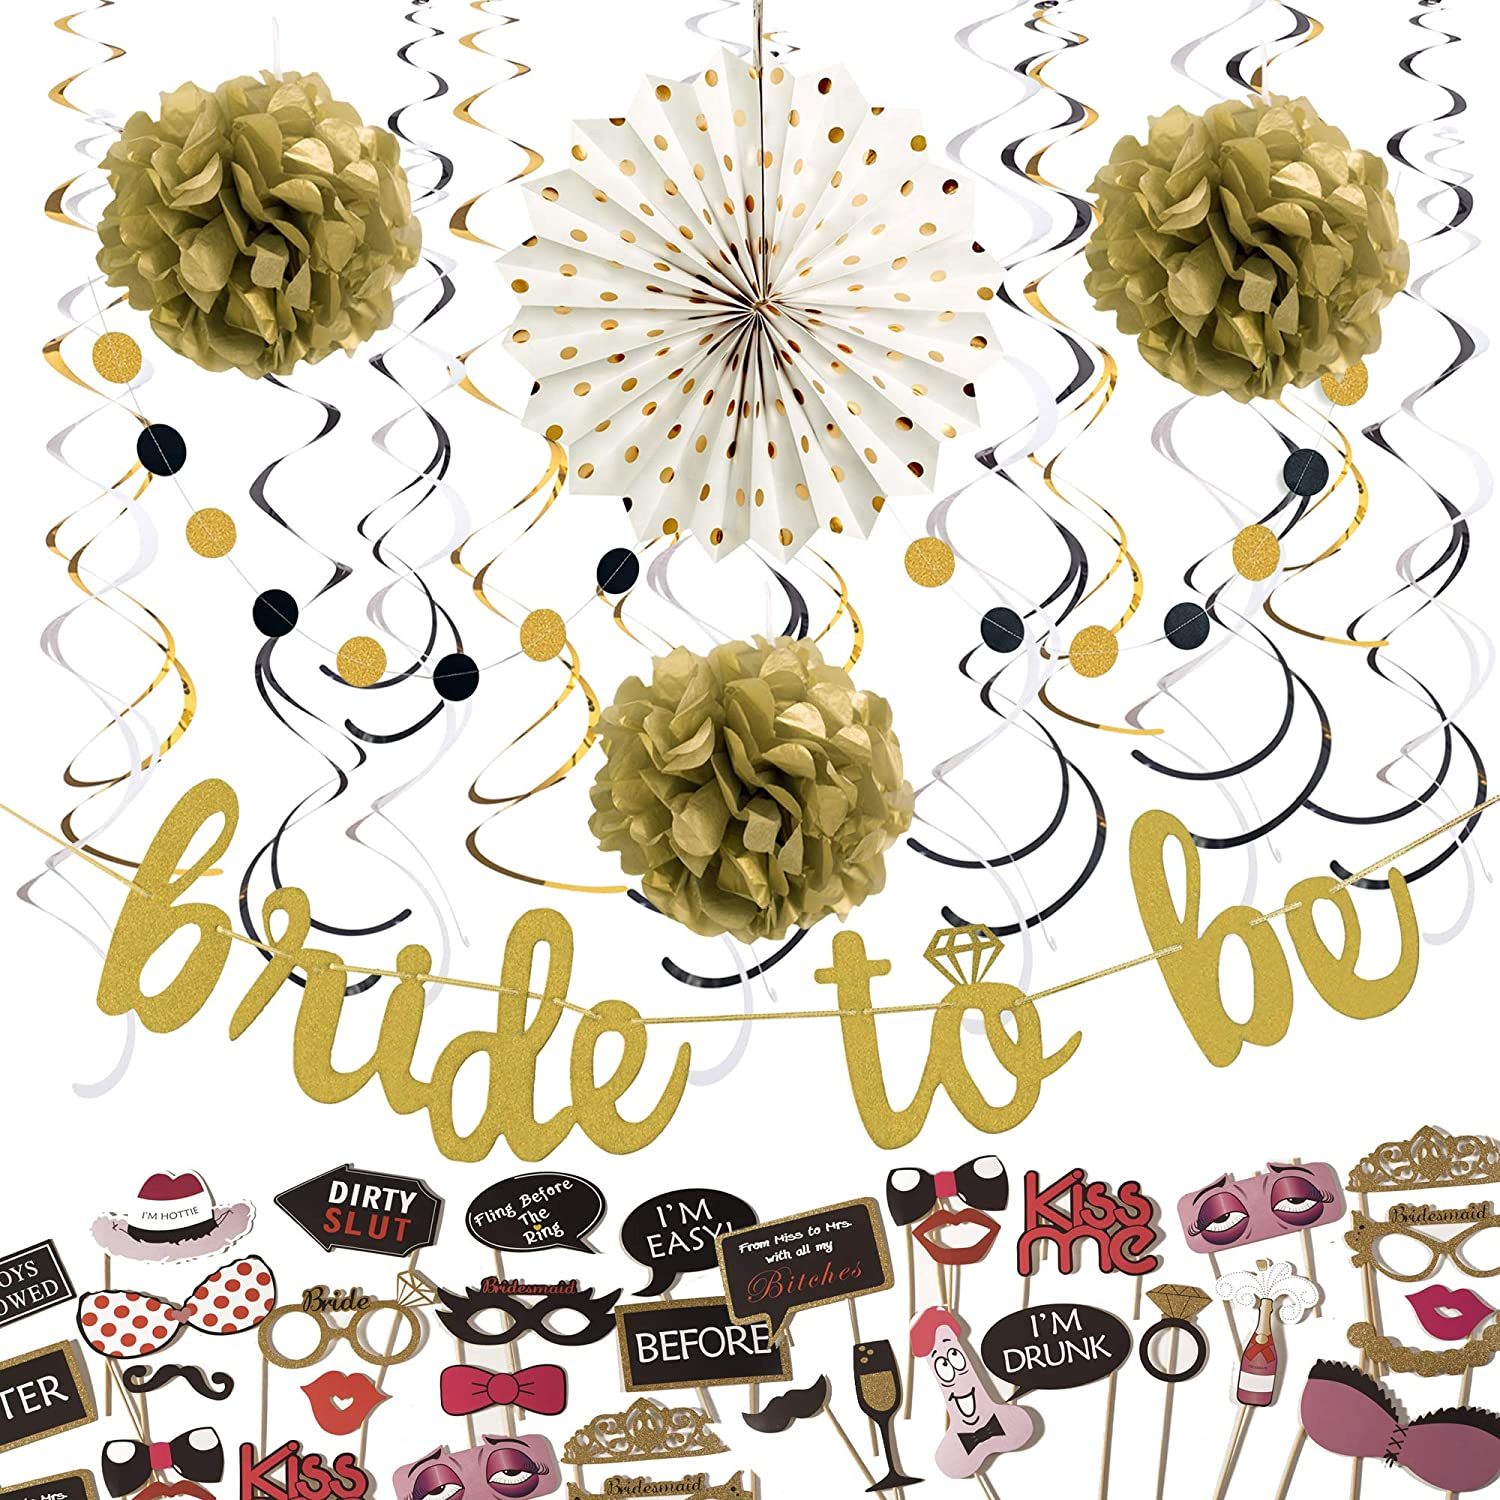 """Bachelorette Party Decorations Kit - 54 Pcs - Bridal Shower Supplies - Bride to be Decoration - Photo Booth Props Set - Gold Decor """"Bride to Be"""" Banner, Paper Fan, Paper Garlands, Pom Pom's, Swirls"""